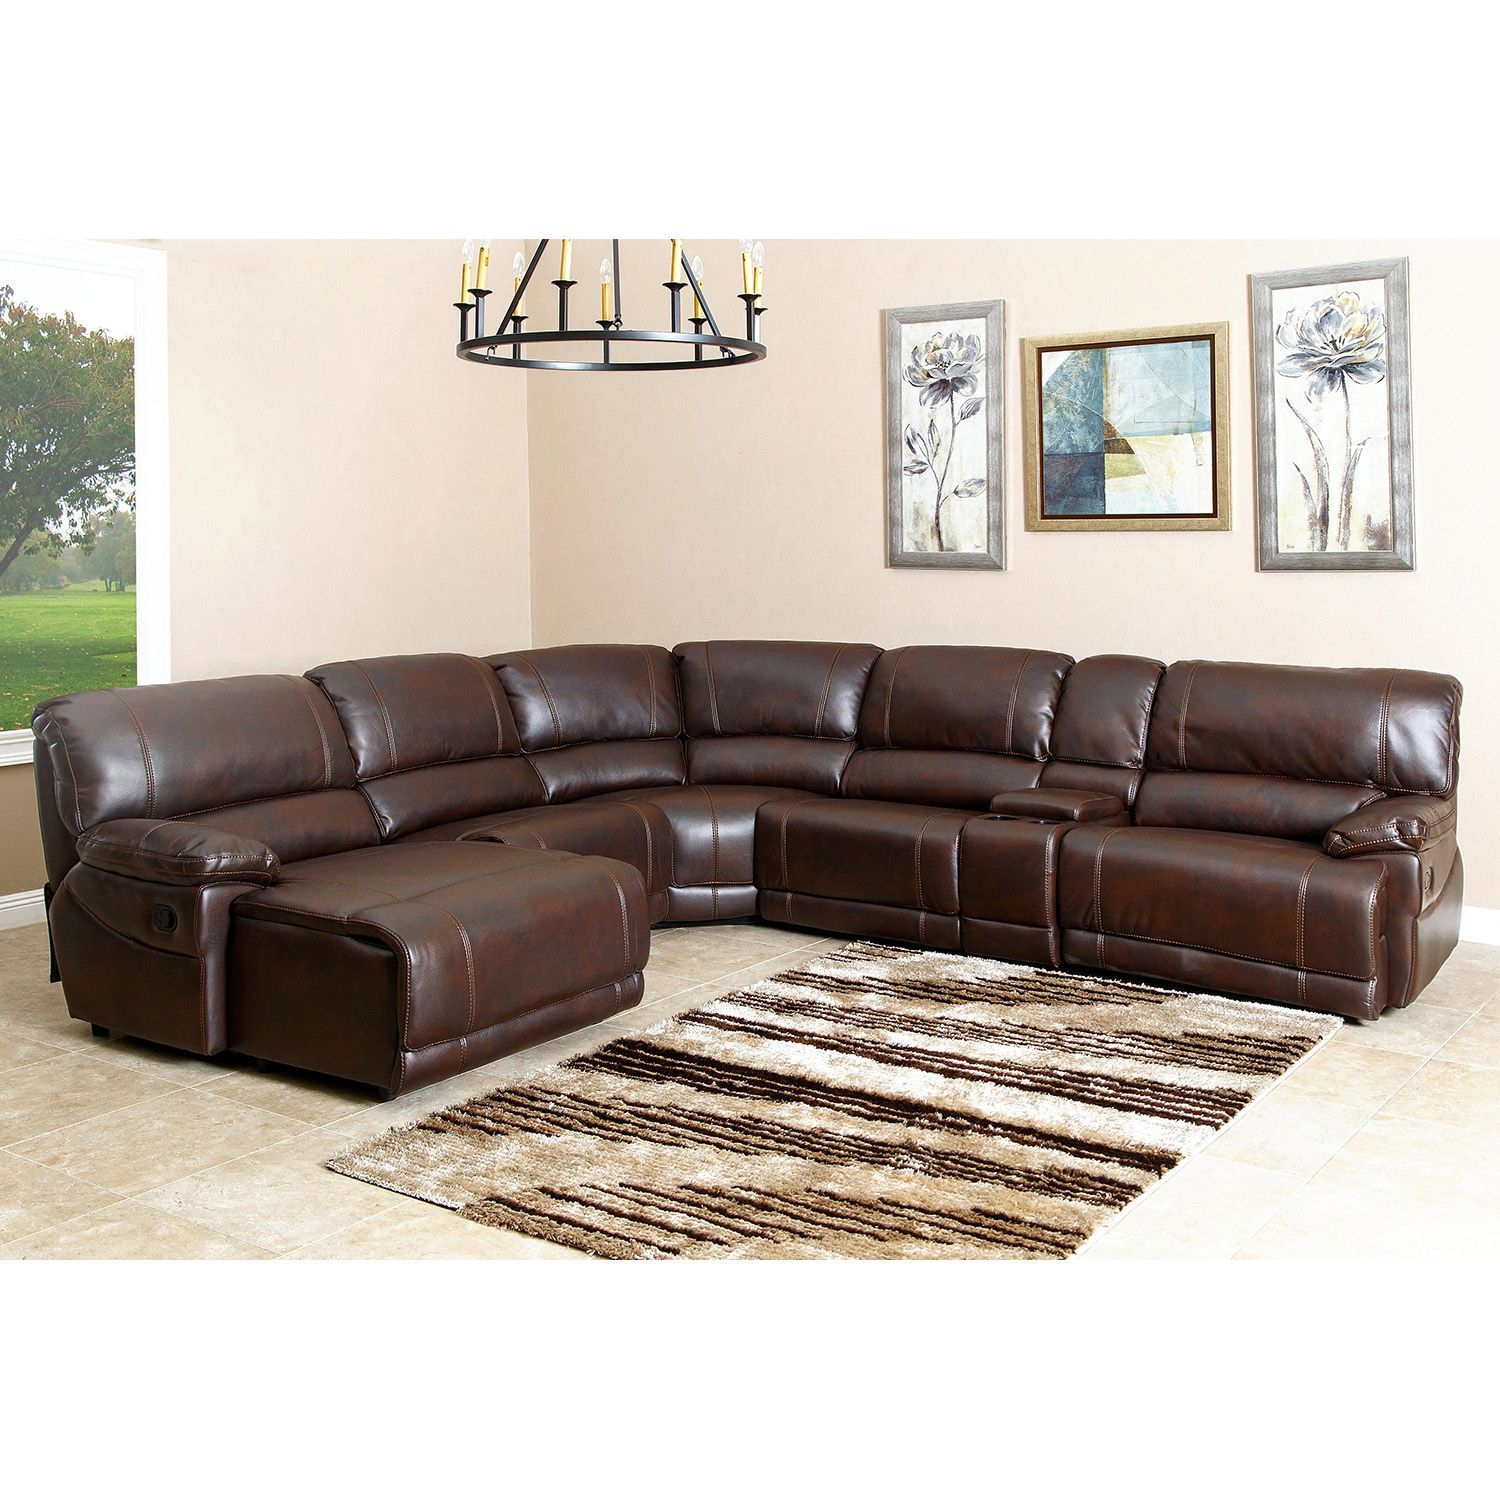 Best Carrington 6 Piece Sectional Sofa Sam S Club Family 400 x 300